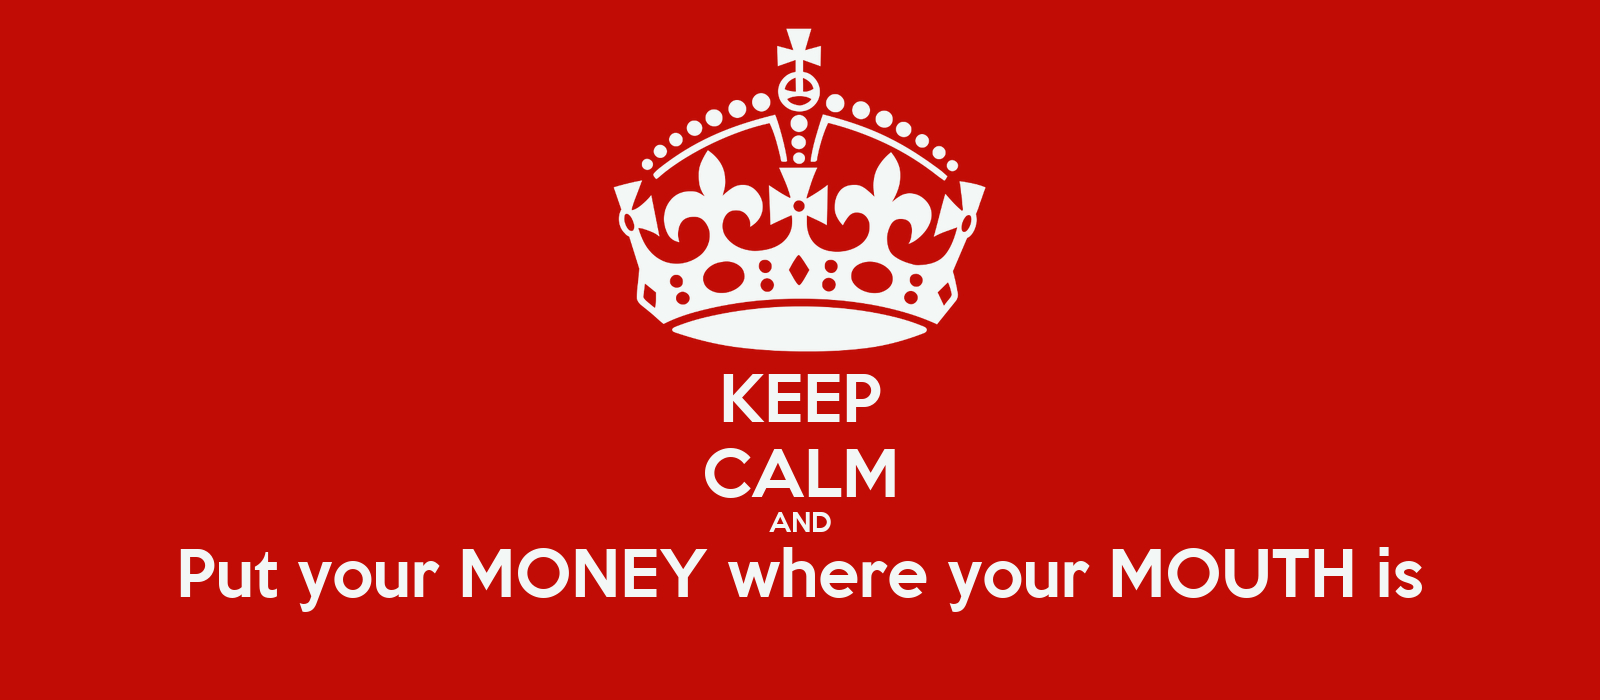 Put Your Money Where Your Mouth Is Video 71